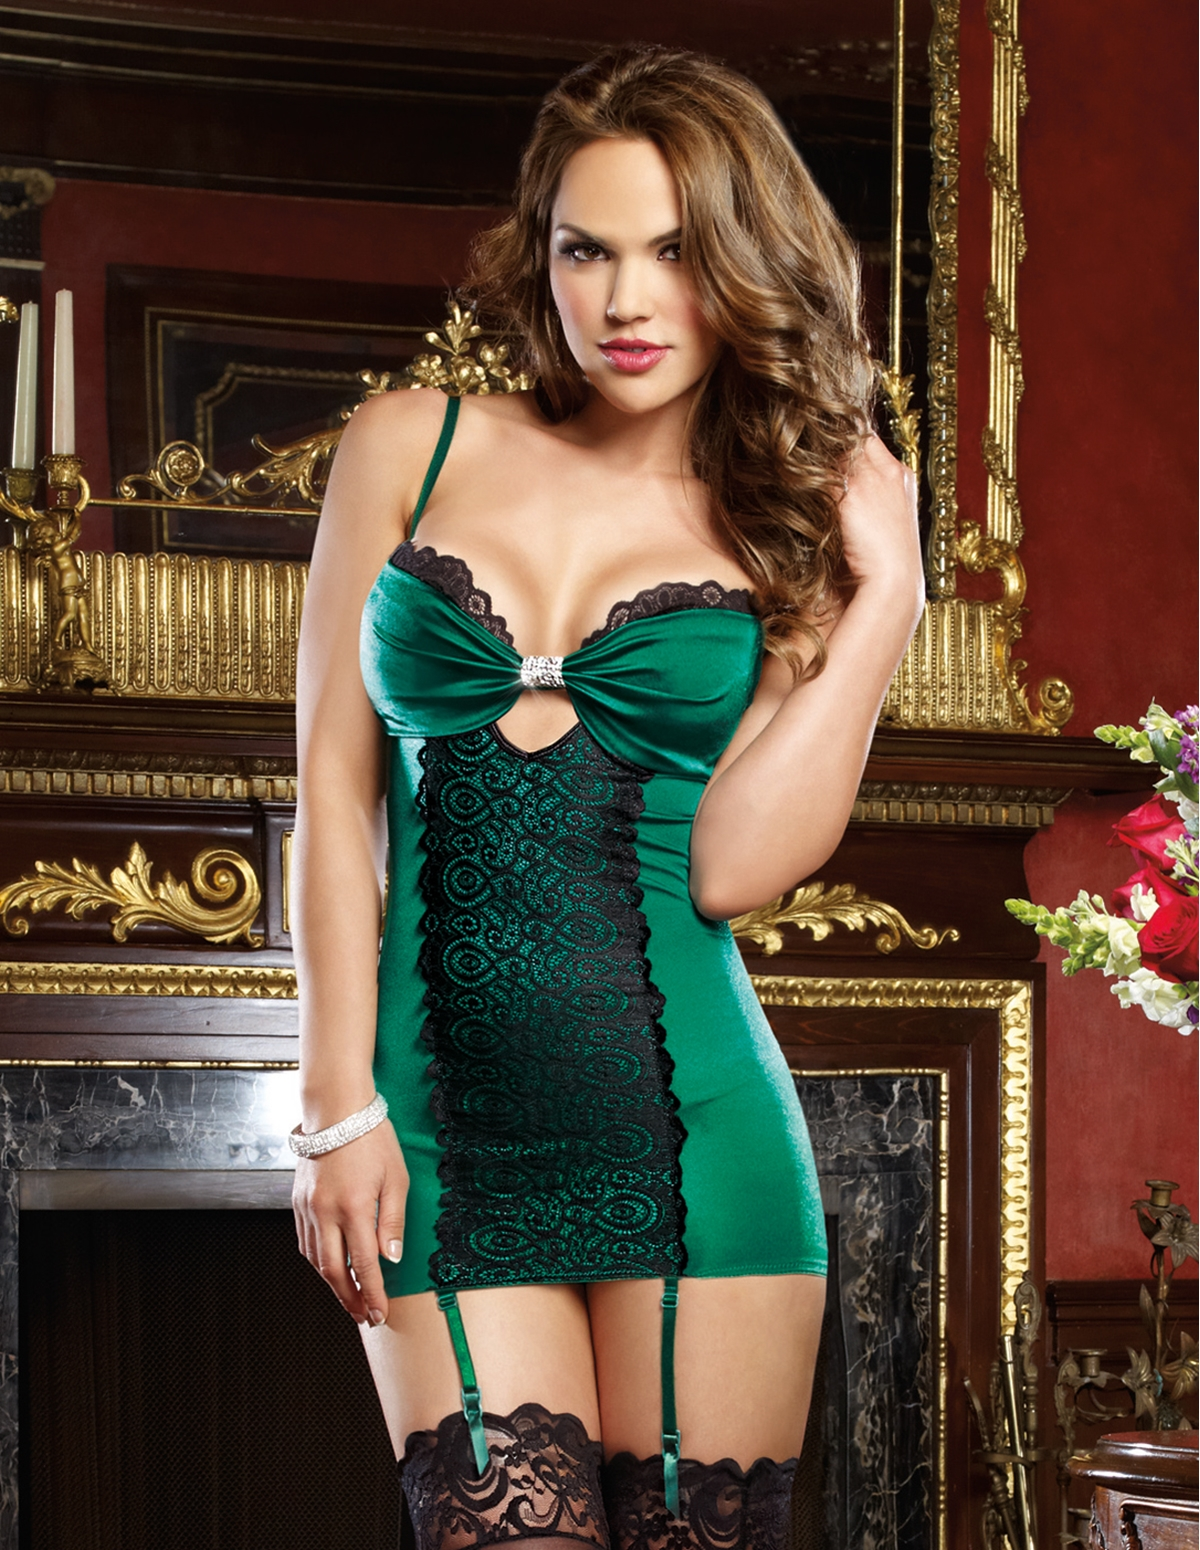 Emerald Envy Chemise With Garters